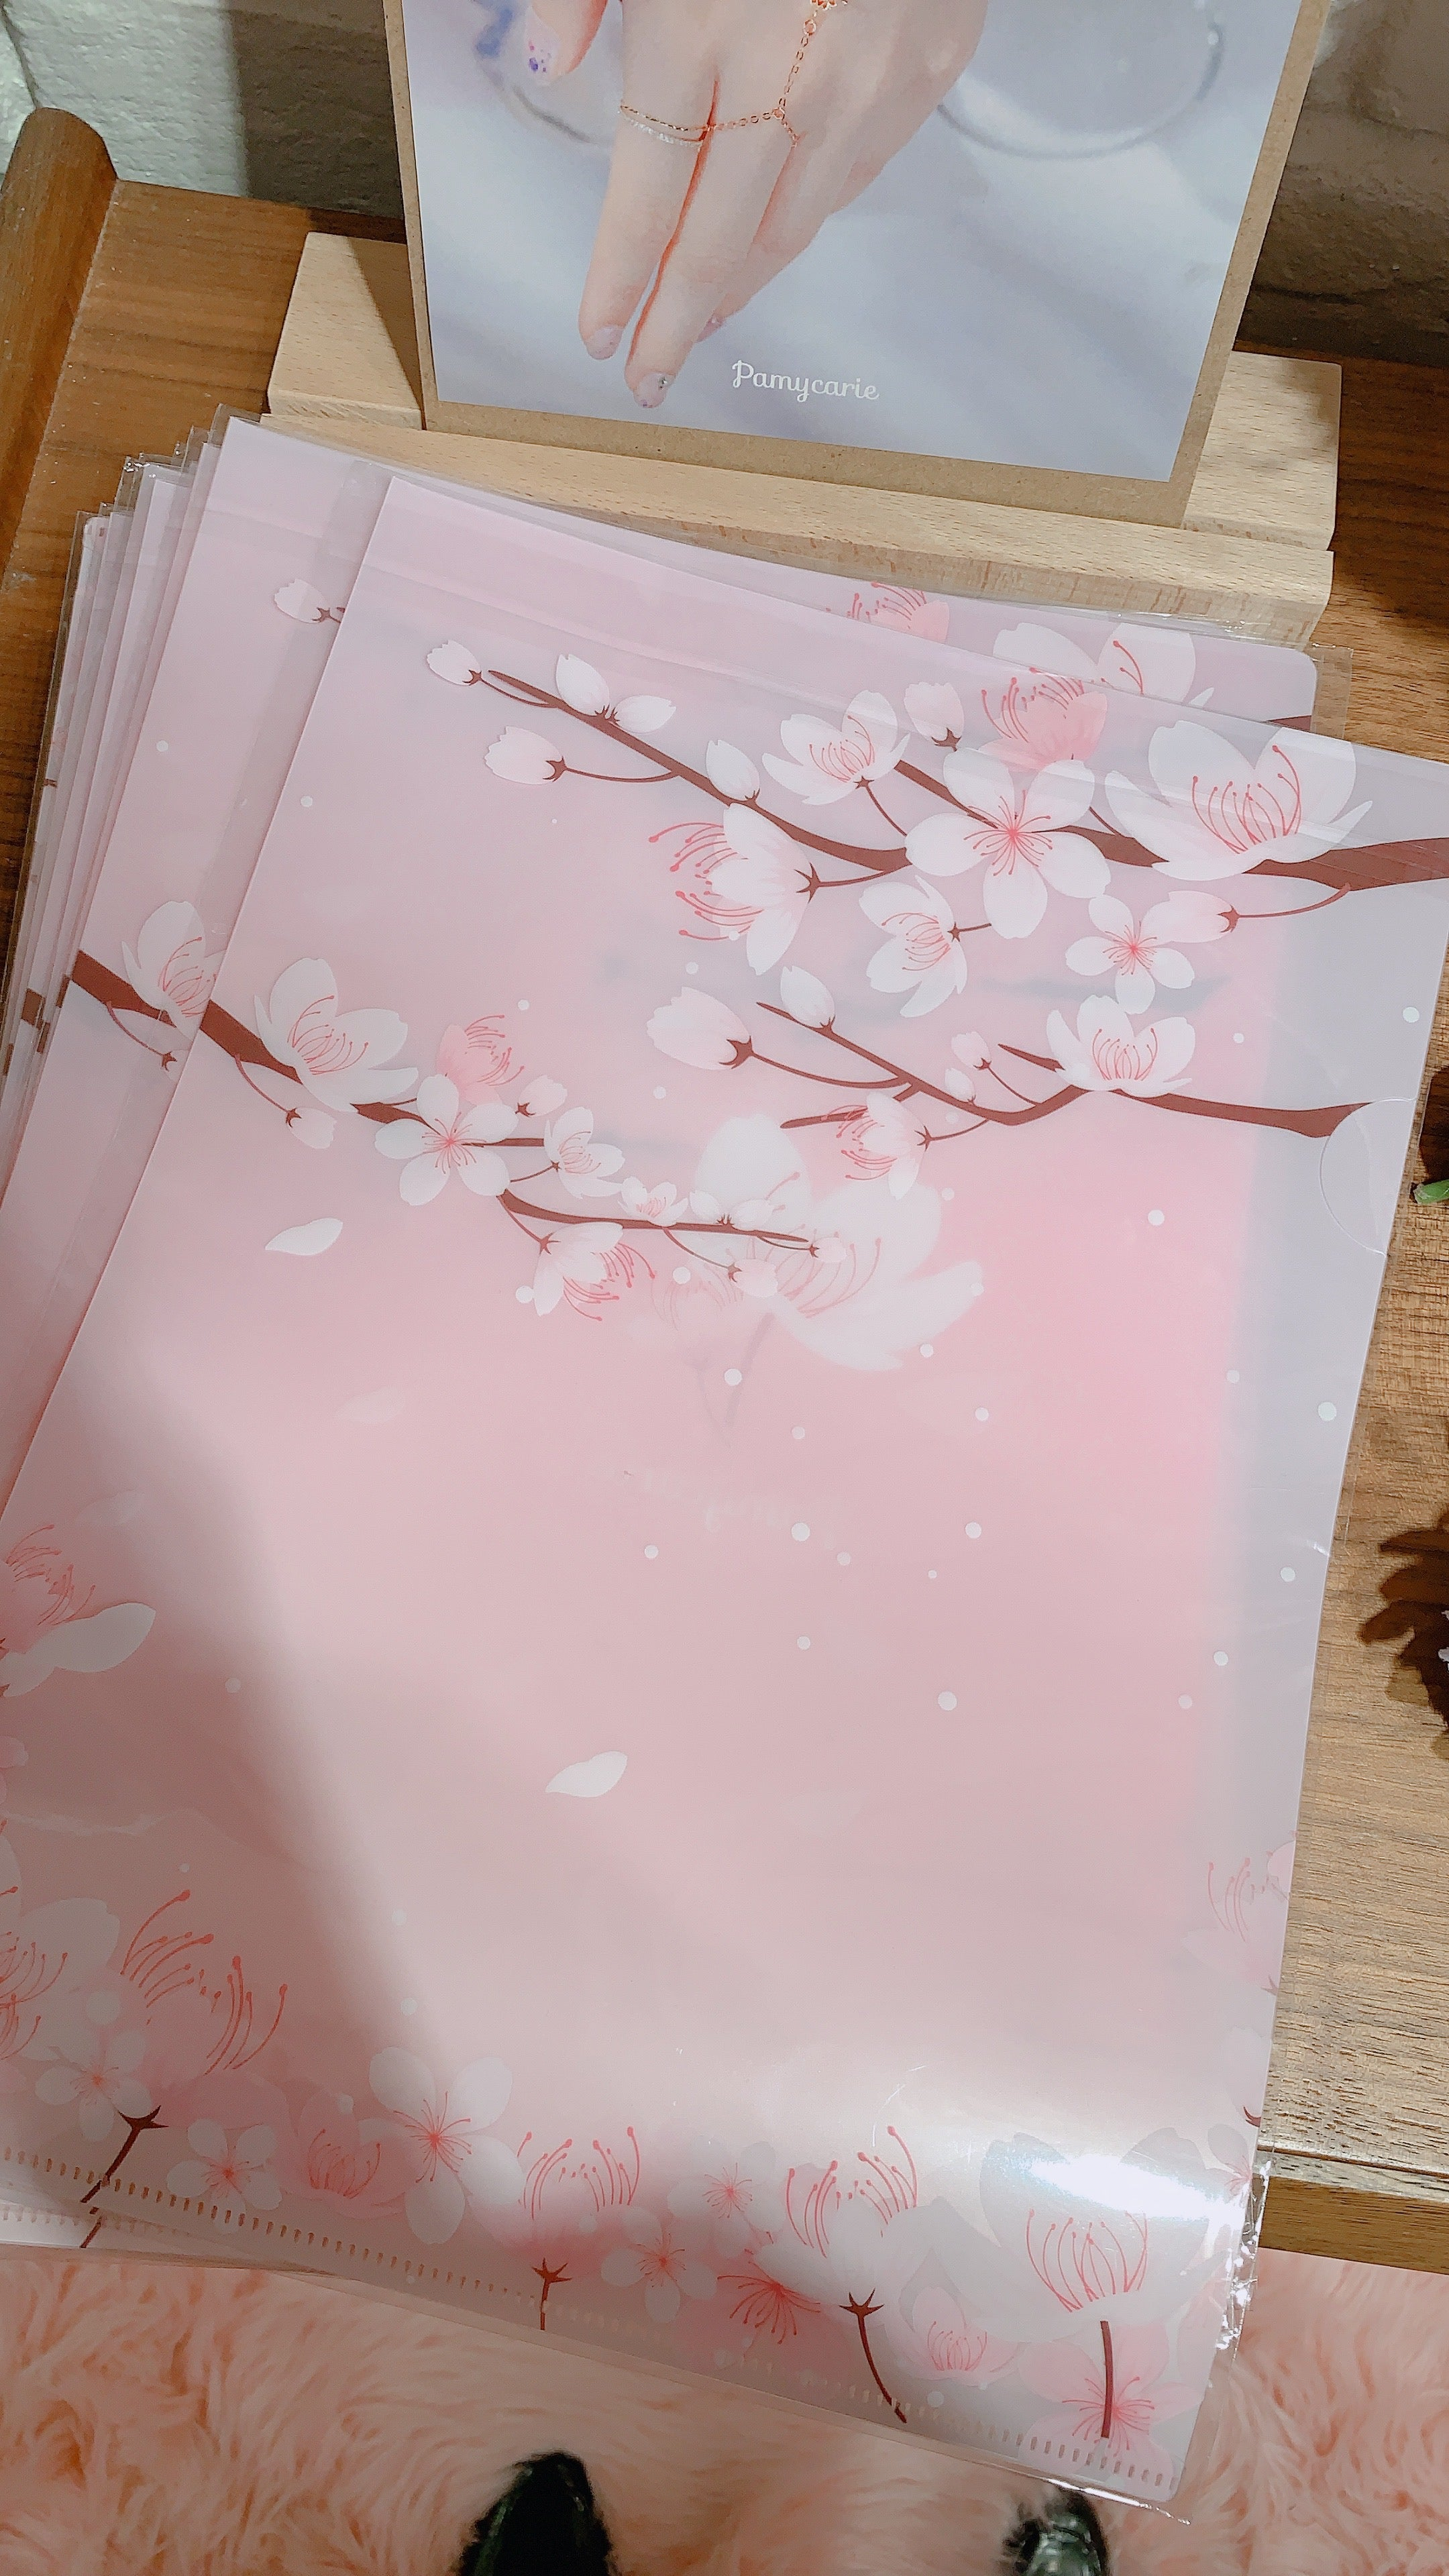 Sakura Translucent Folder